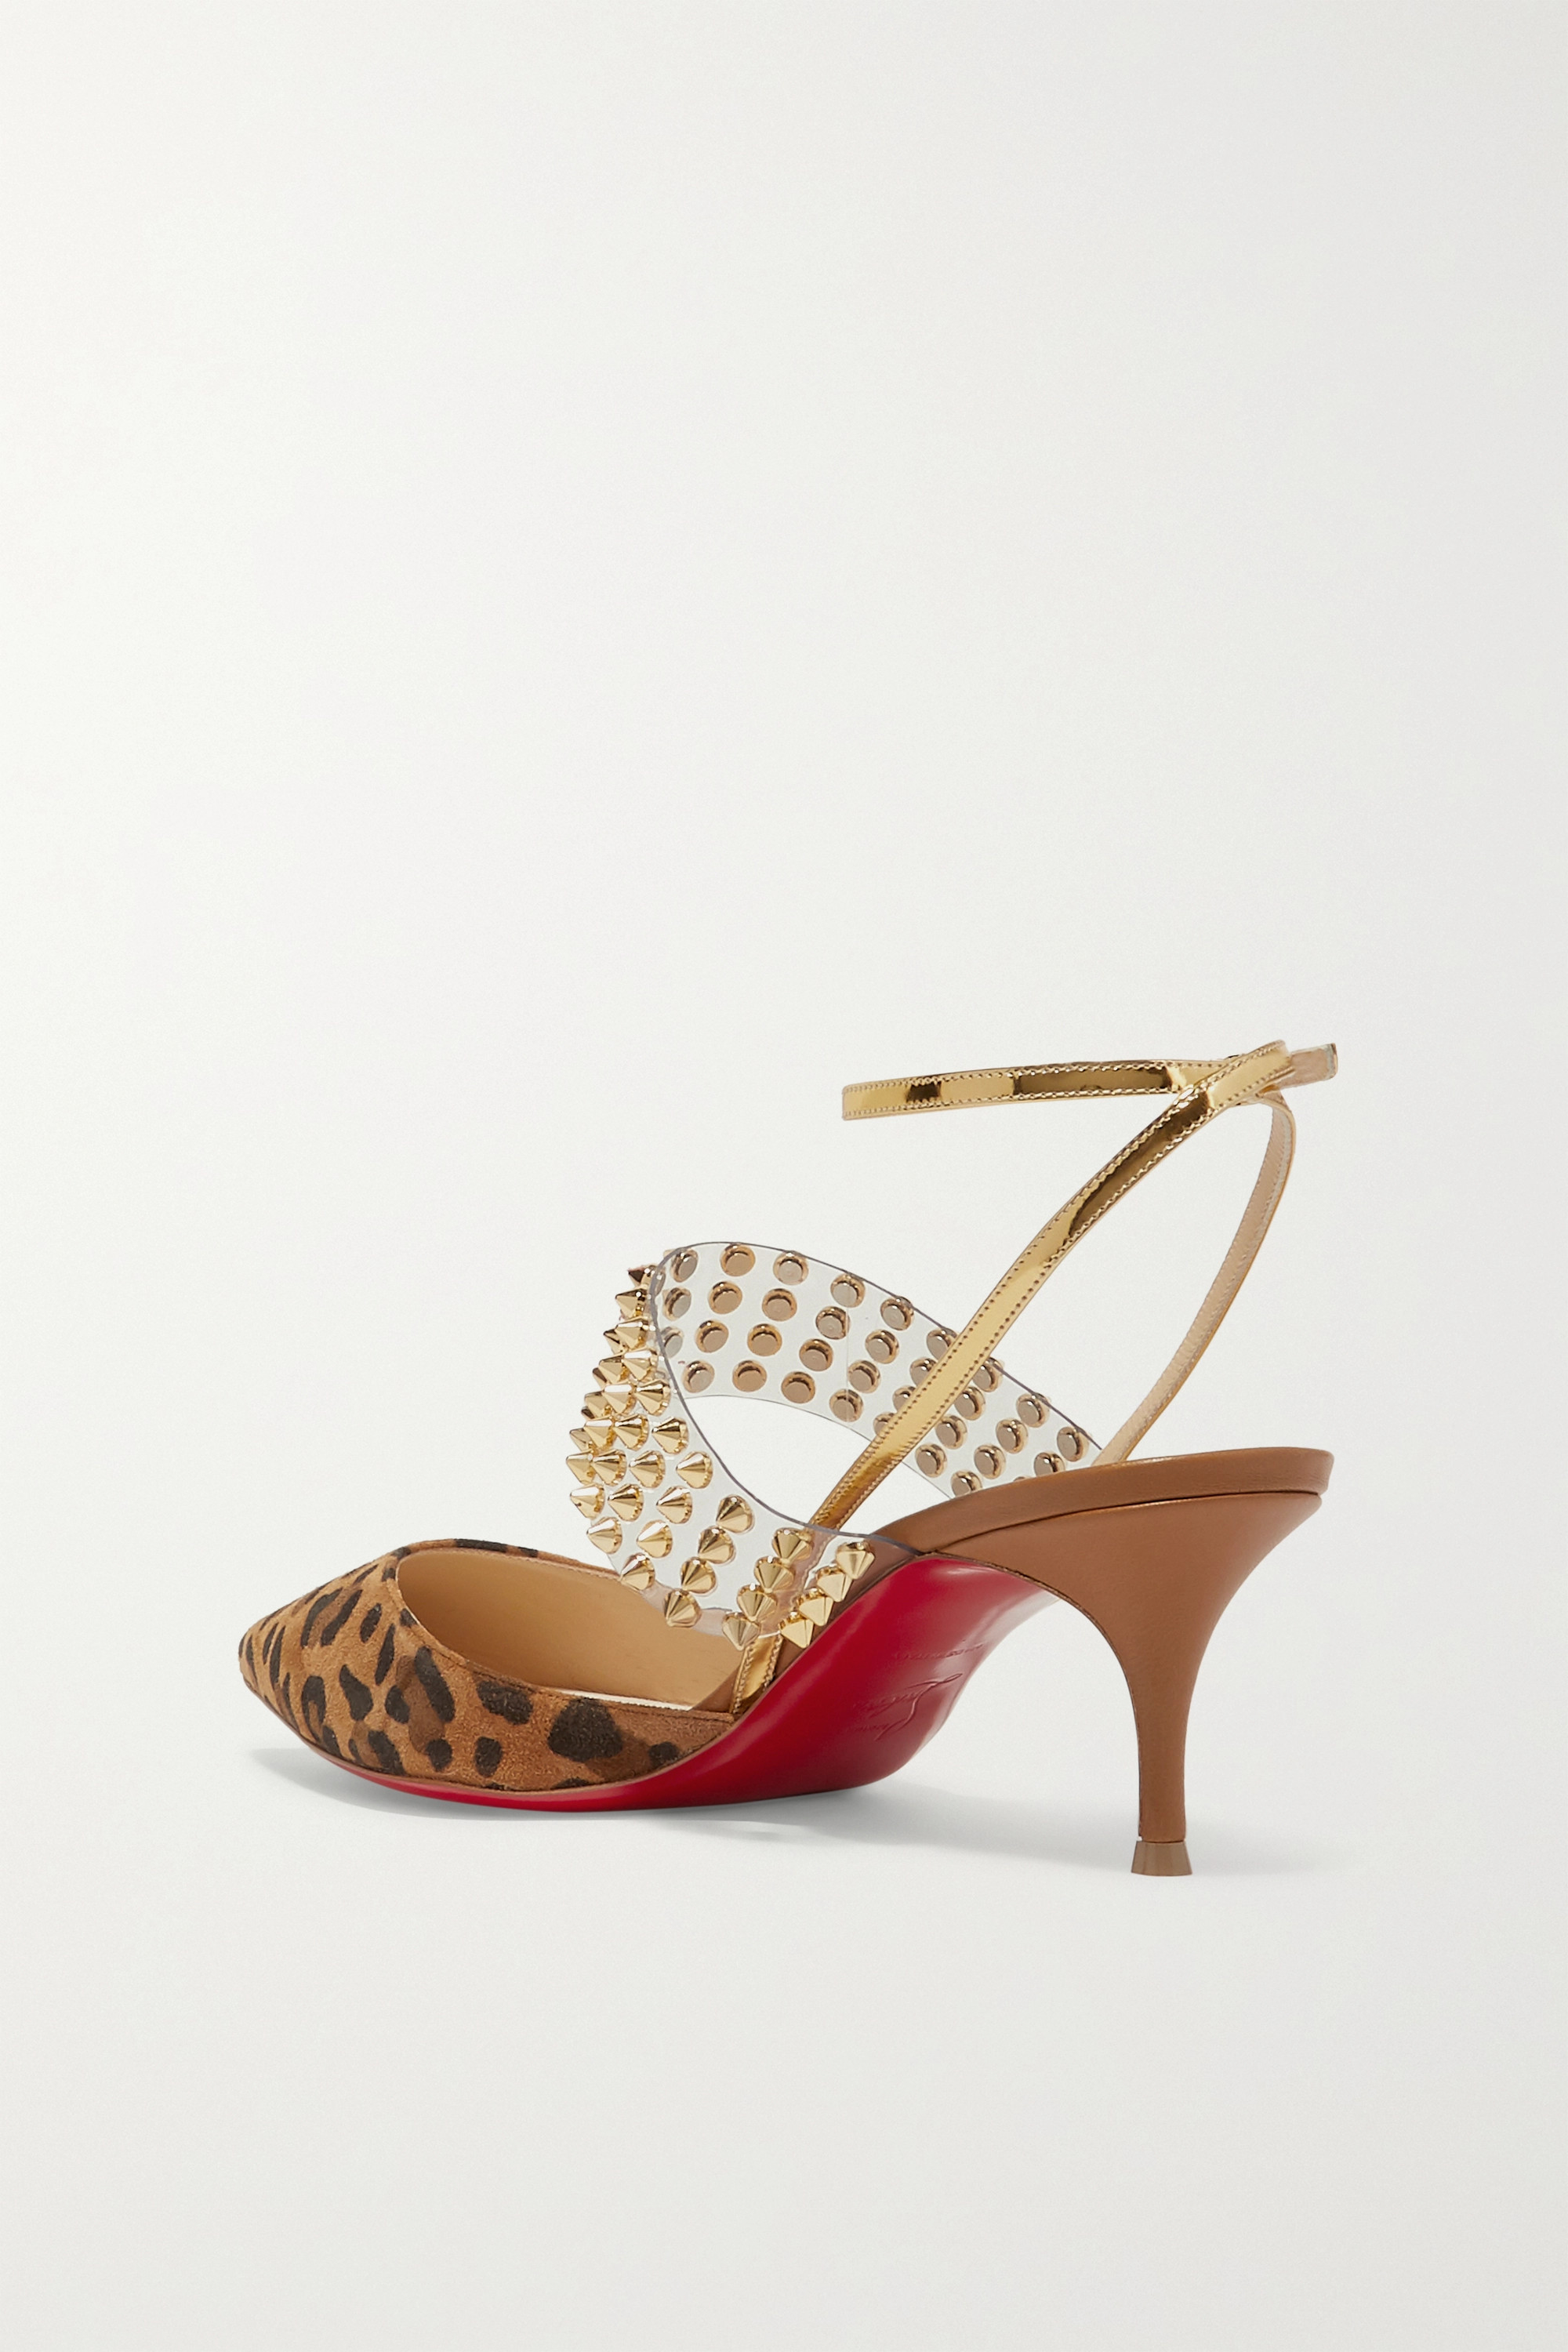 Christian Louboutin Levita 55 spiked PVC, mirrored-leather and leopard-print suede pumps